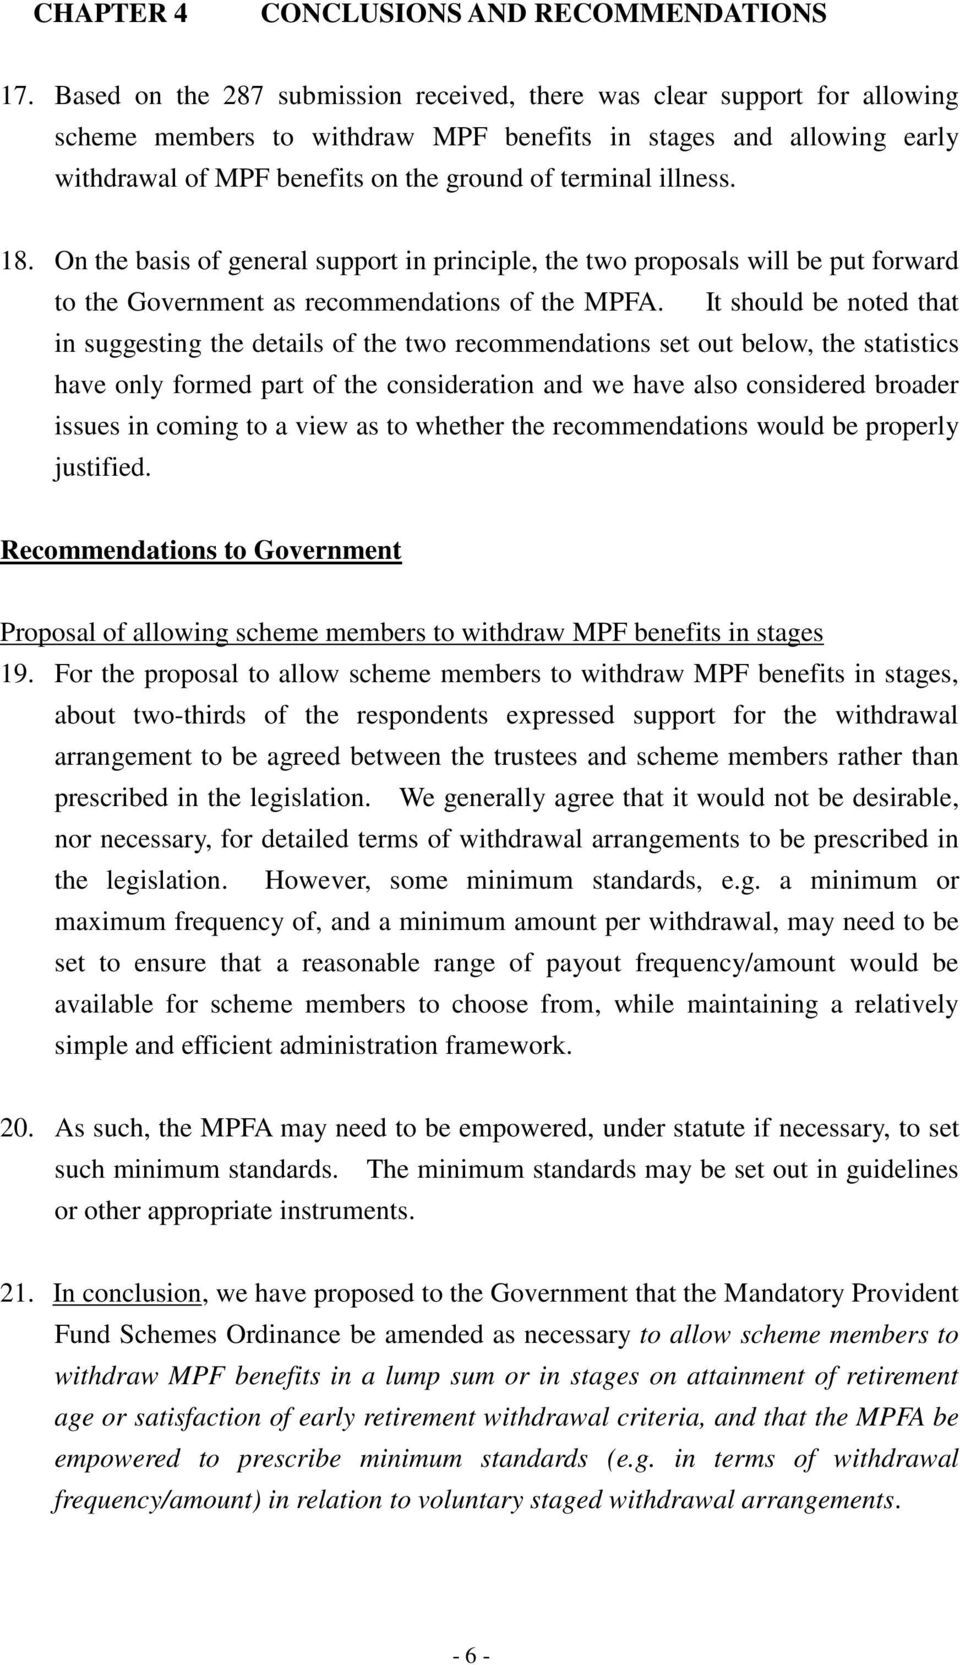 illness. 18. On the basis of general support in principle, the two proposals will be put forward to the Government as recommendations of the MPFA.